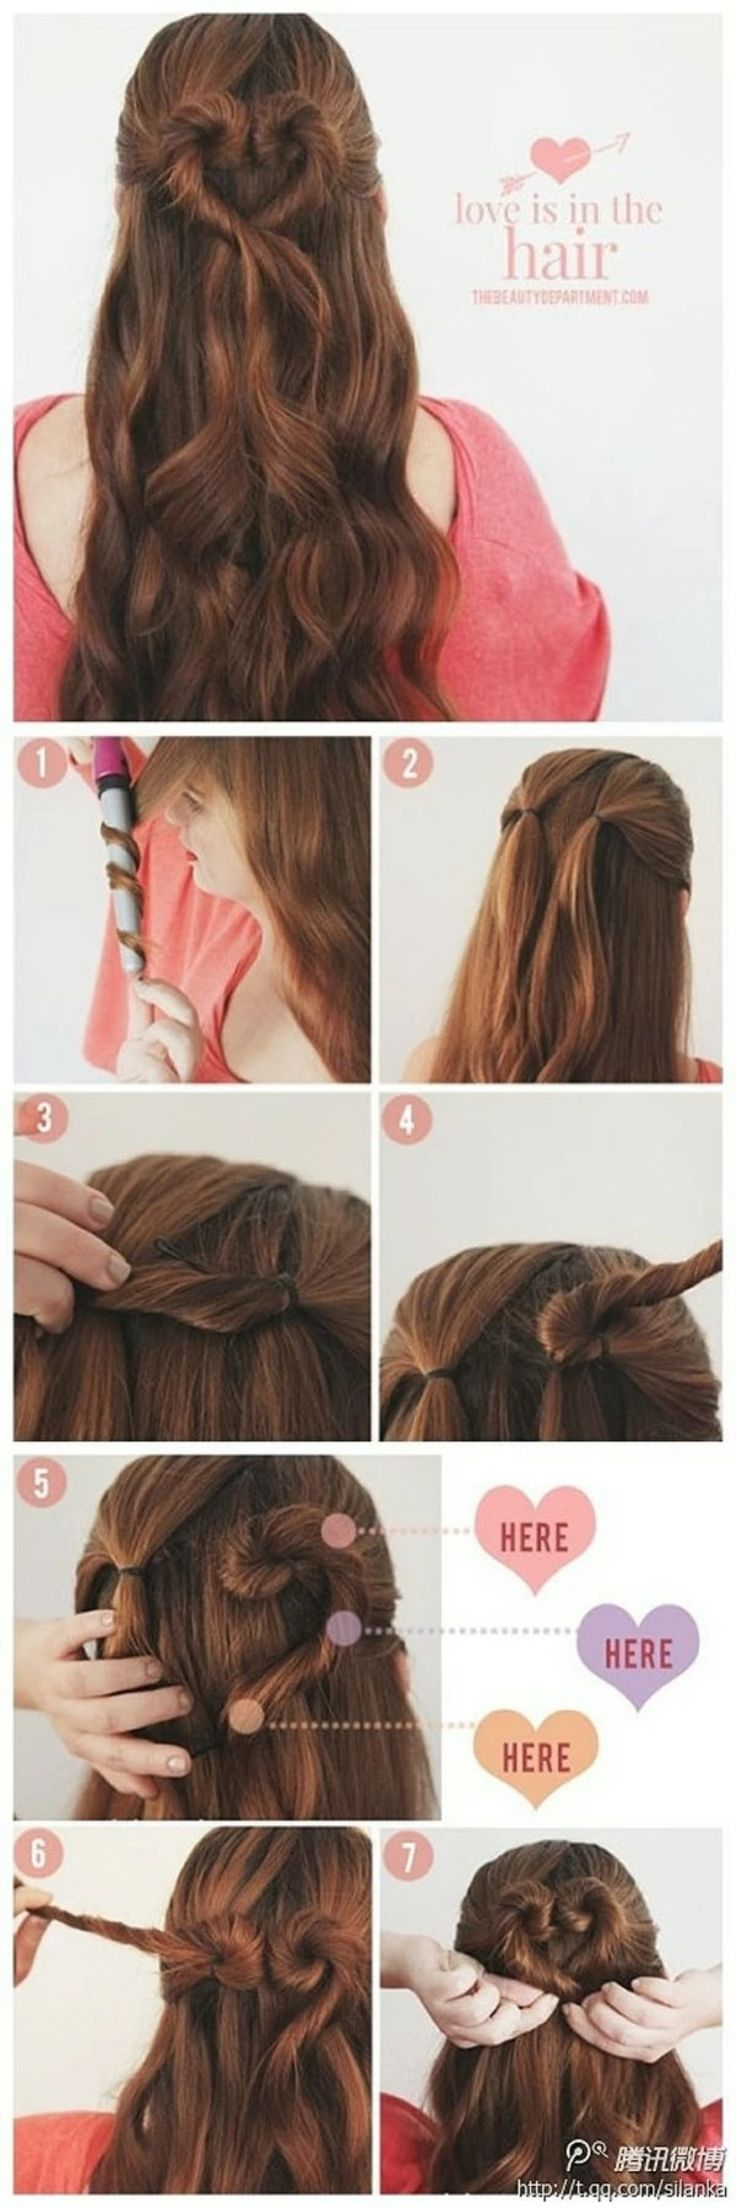 Heart-shaped 1/2-up hairstyle